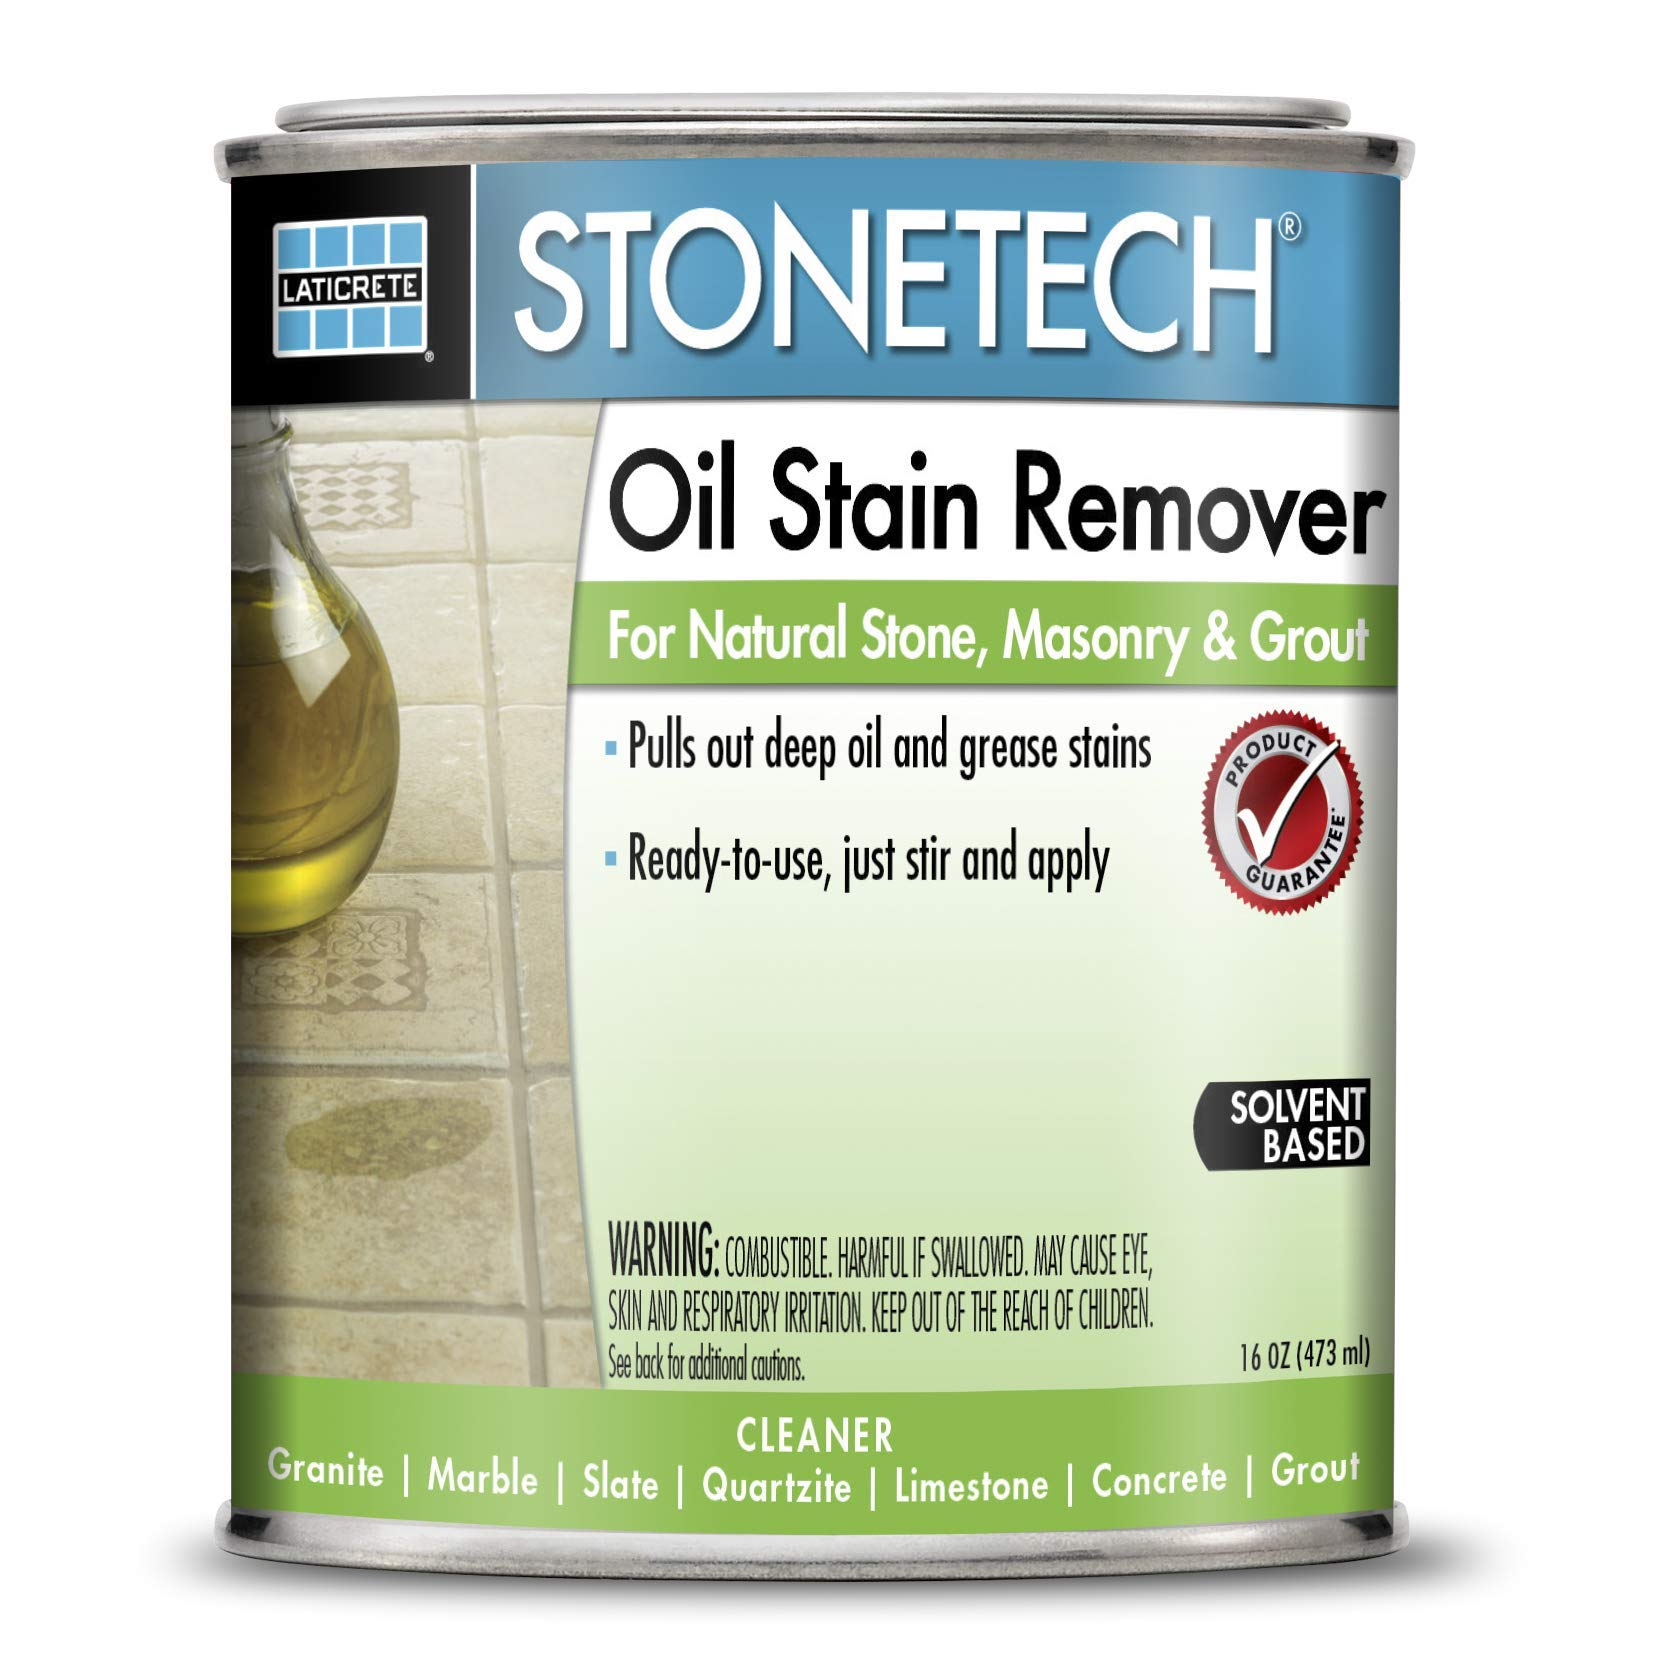 StoneTech Oil Stain Remover, Cleaner for Natural Stone, Grout, & Masonry, 1-Pint (.473L)